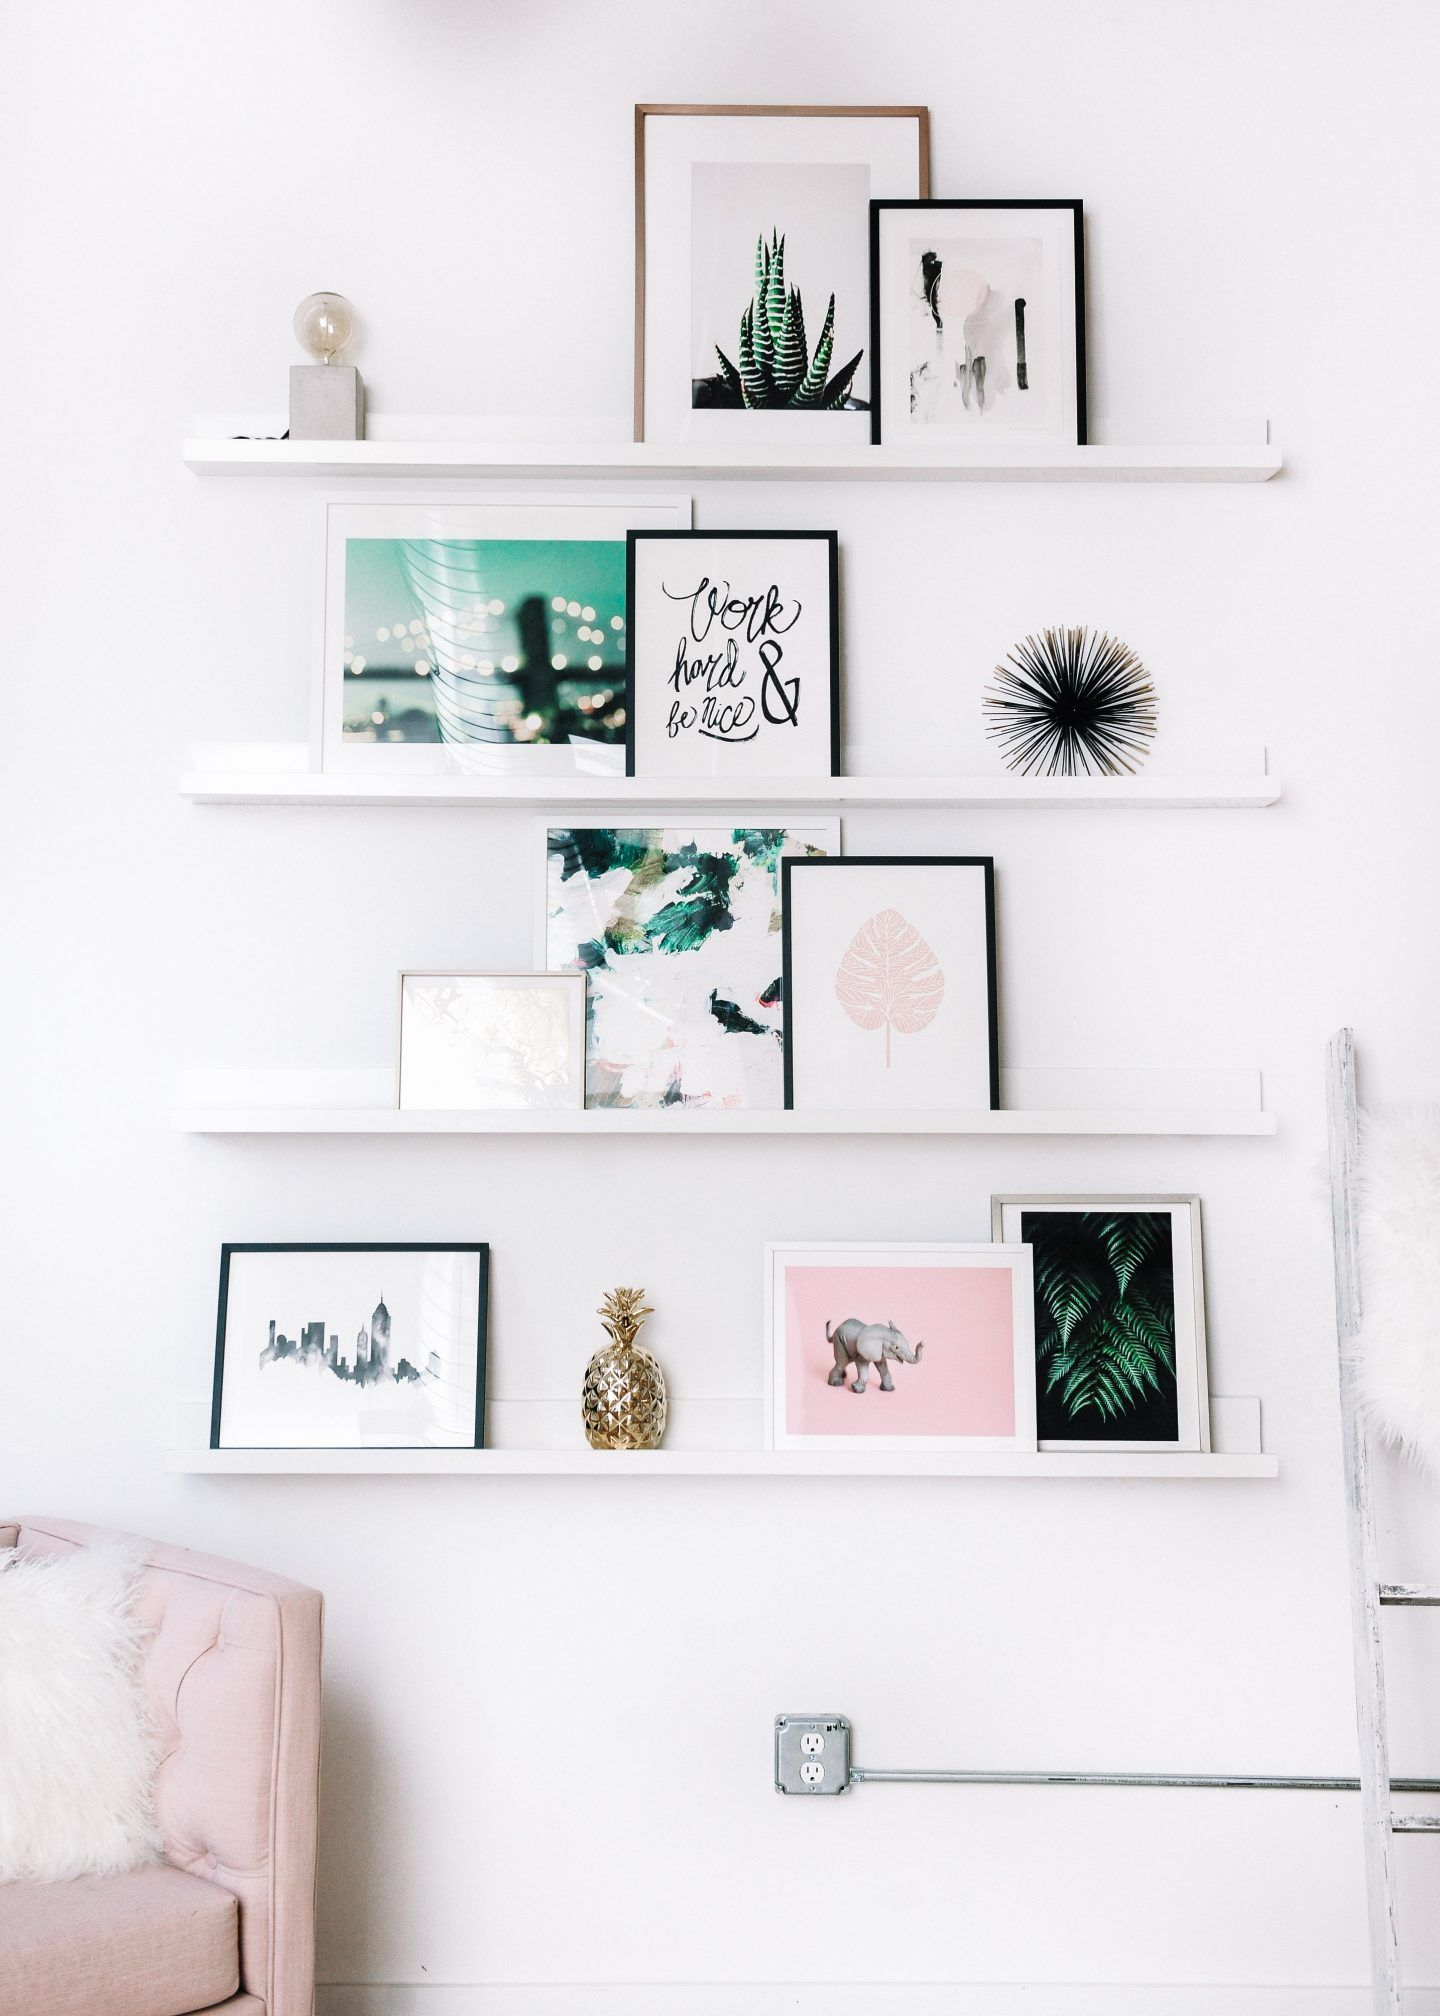 Scout The City On Pinterest Create An Office Gallery Wall To Spark Your Creativity